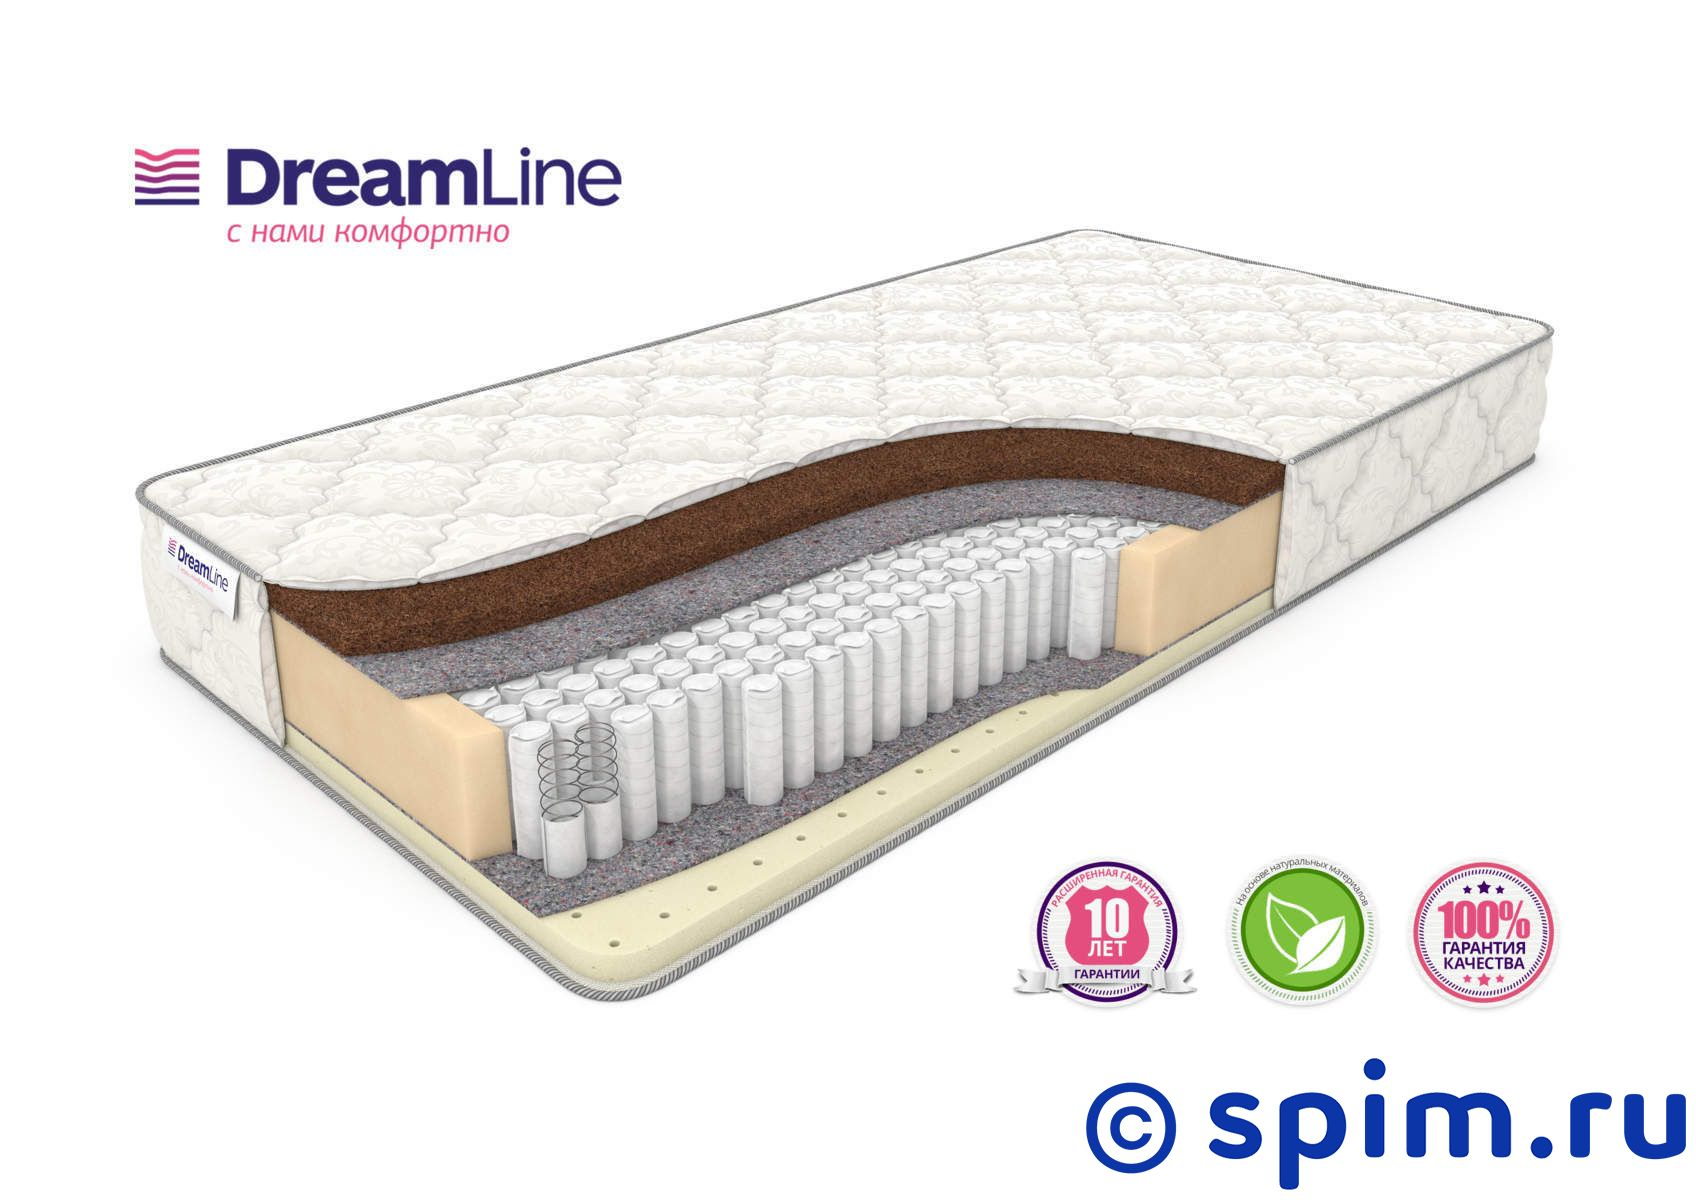 Матрас DreamLine SleepDream S1000 150х190 см матрас dreamline memory dream s 1000 180x190